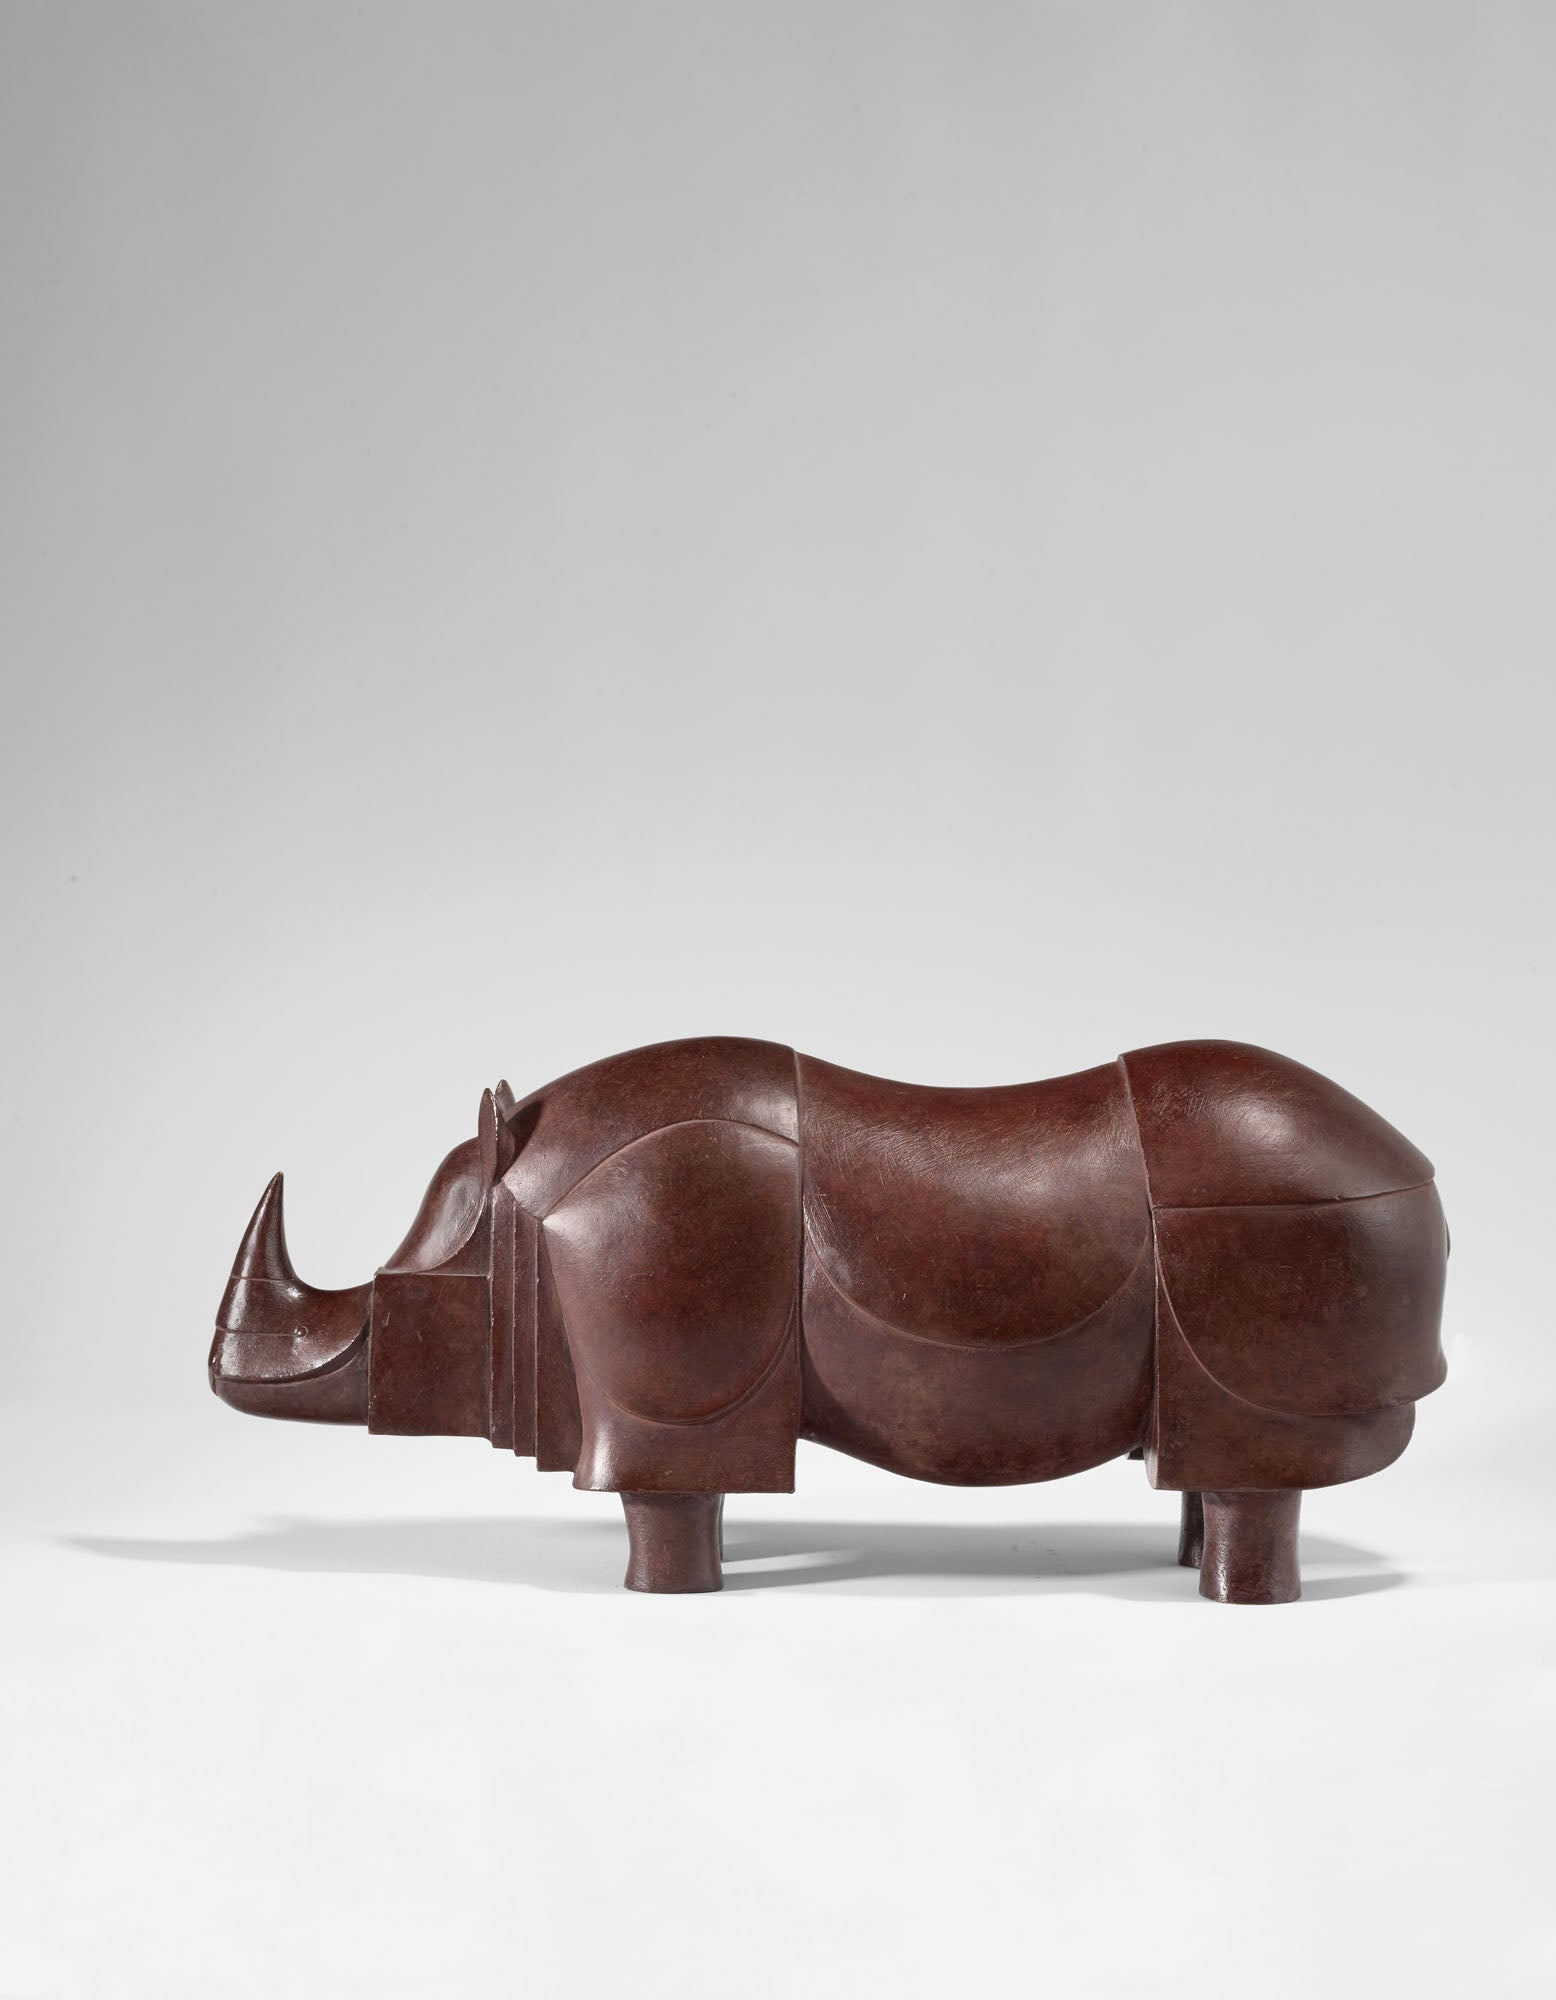 Rhinocéros IV (1990) by François-Xavier Lalanne sold at Christie's Paris in June for €430,000. Photo © Christie's Images Ltd. 2020